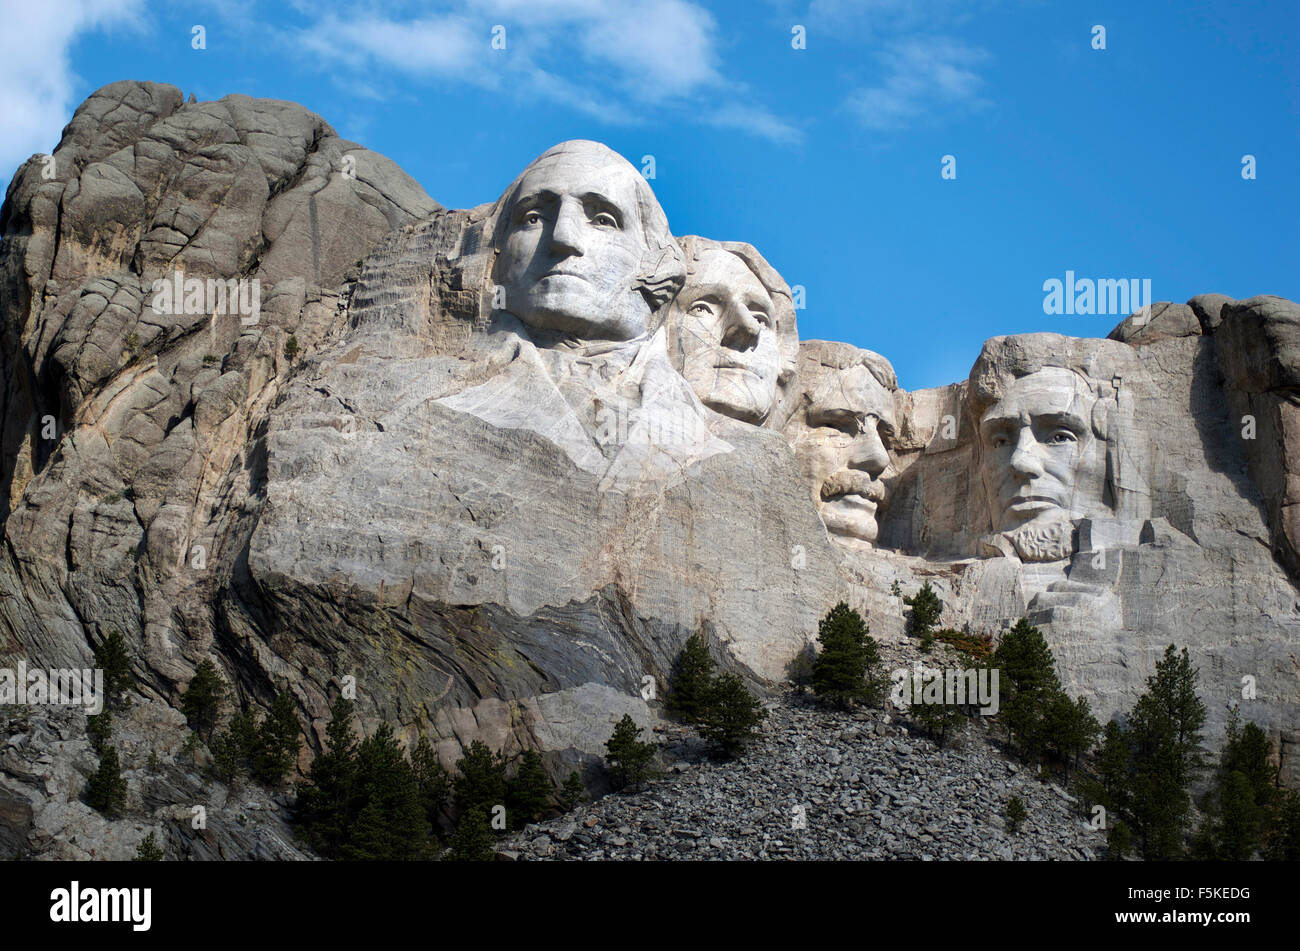 Mt Rushmore National Memorial, U.S. National Park Service - Stock Image